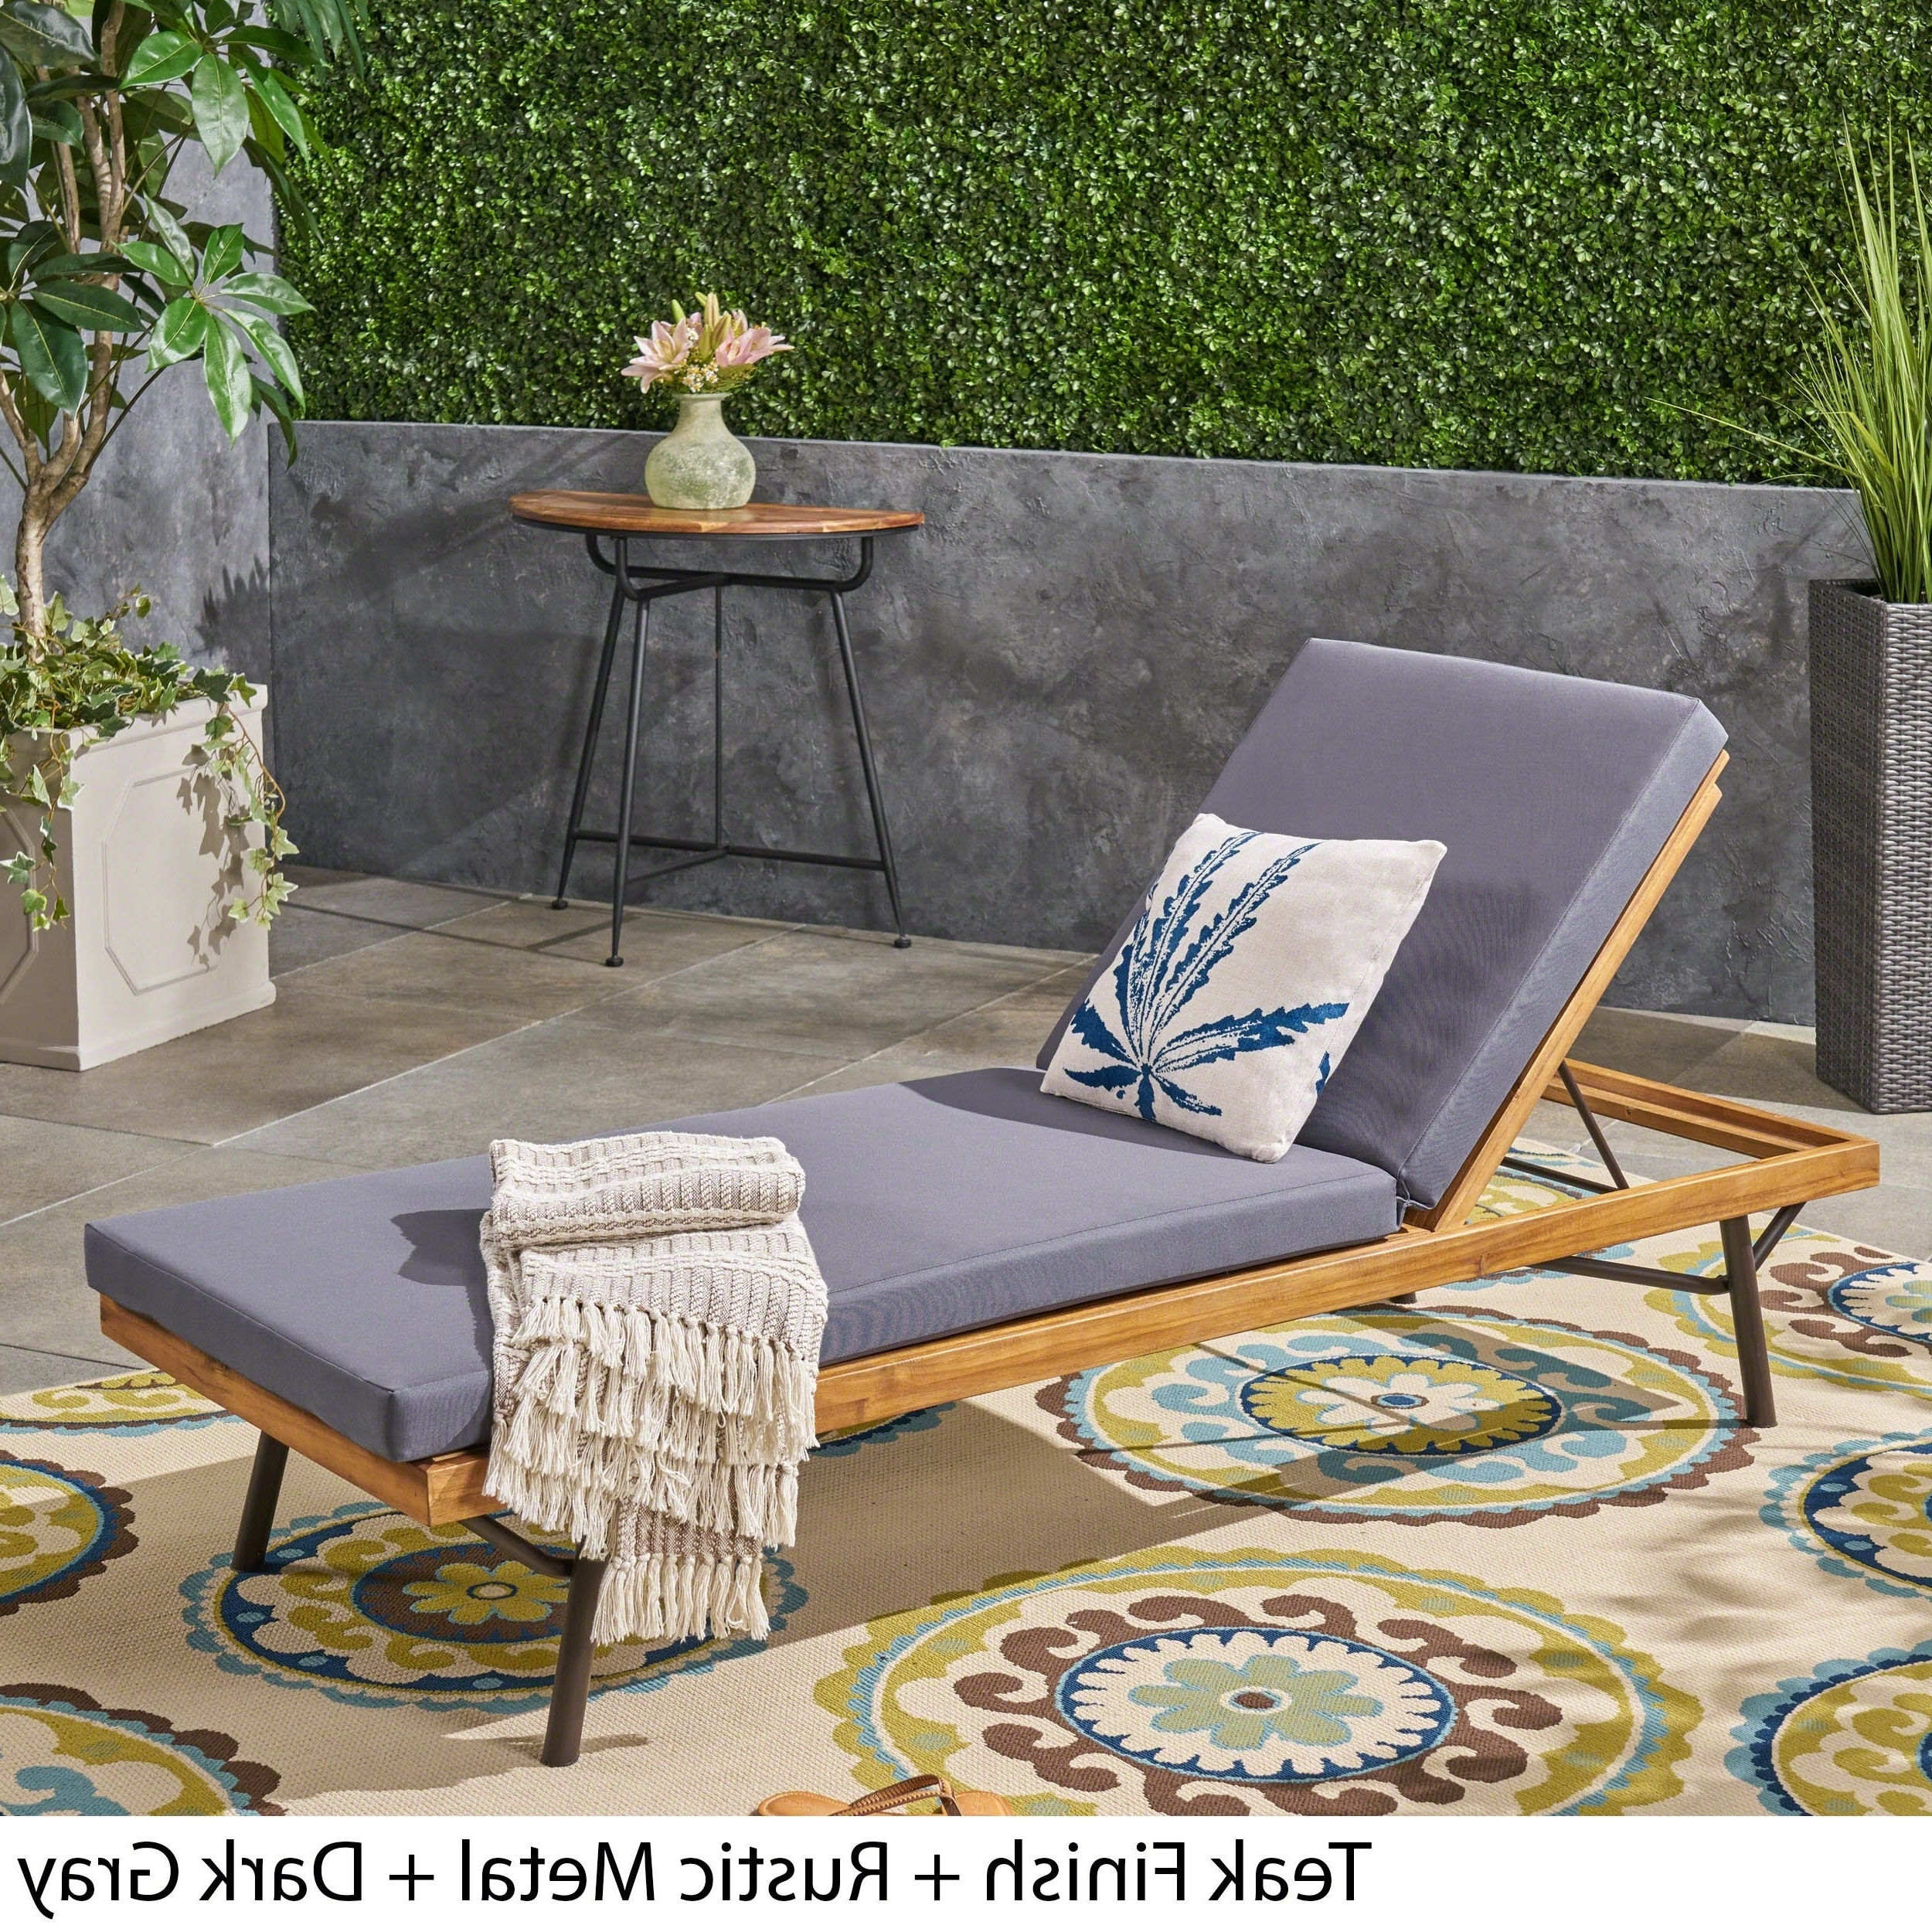 Most Current Outdoor Rustic Acacia Wood Chaise Lounges With Wicker Seats Inside Canoga Outdoor Acacia And Eucalyptus Chaise Loungechristopher Knight  Home (View 10 of 25)